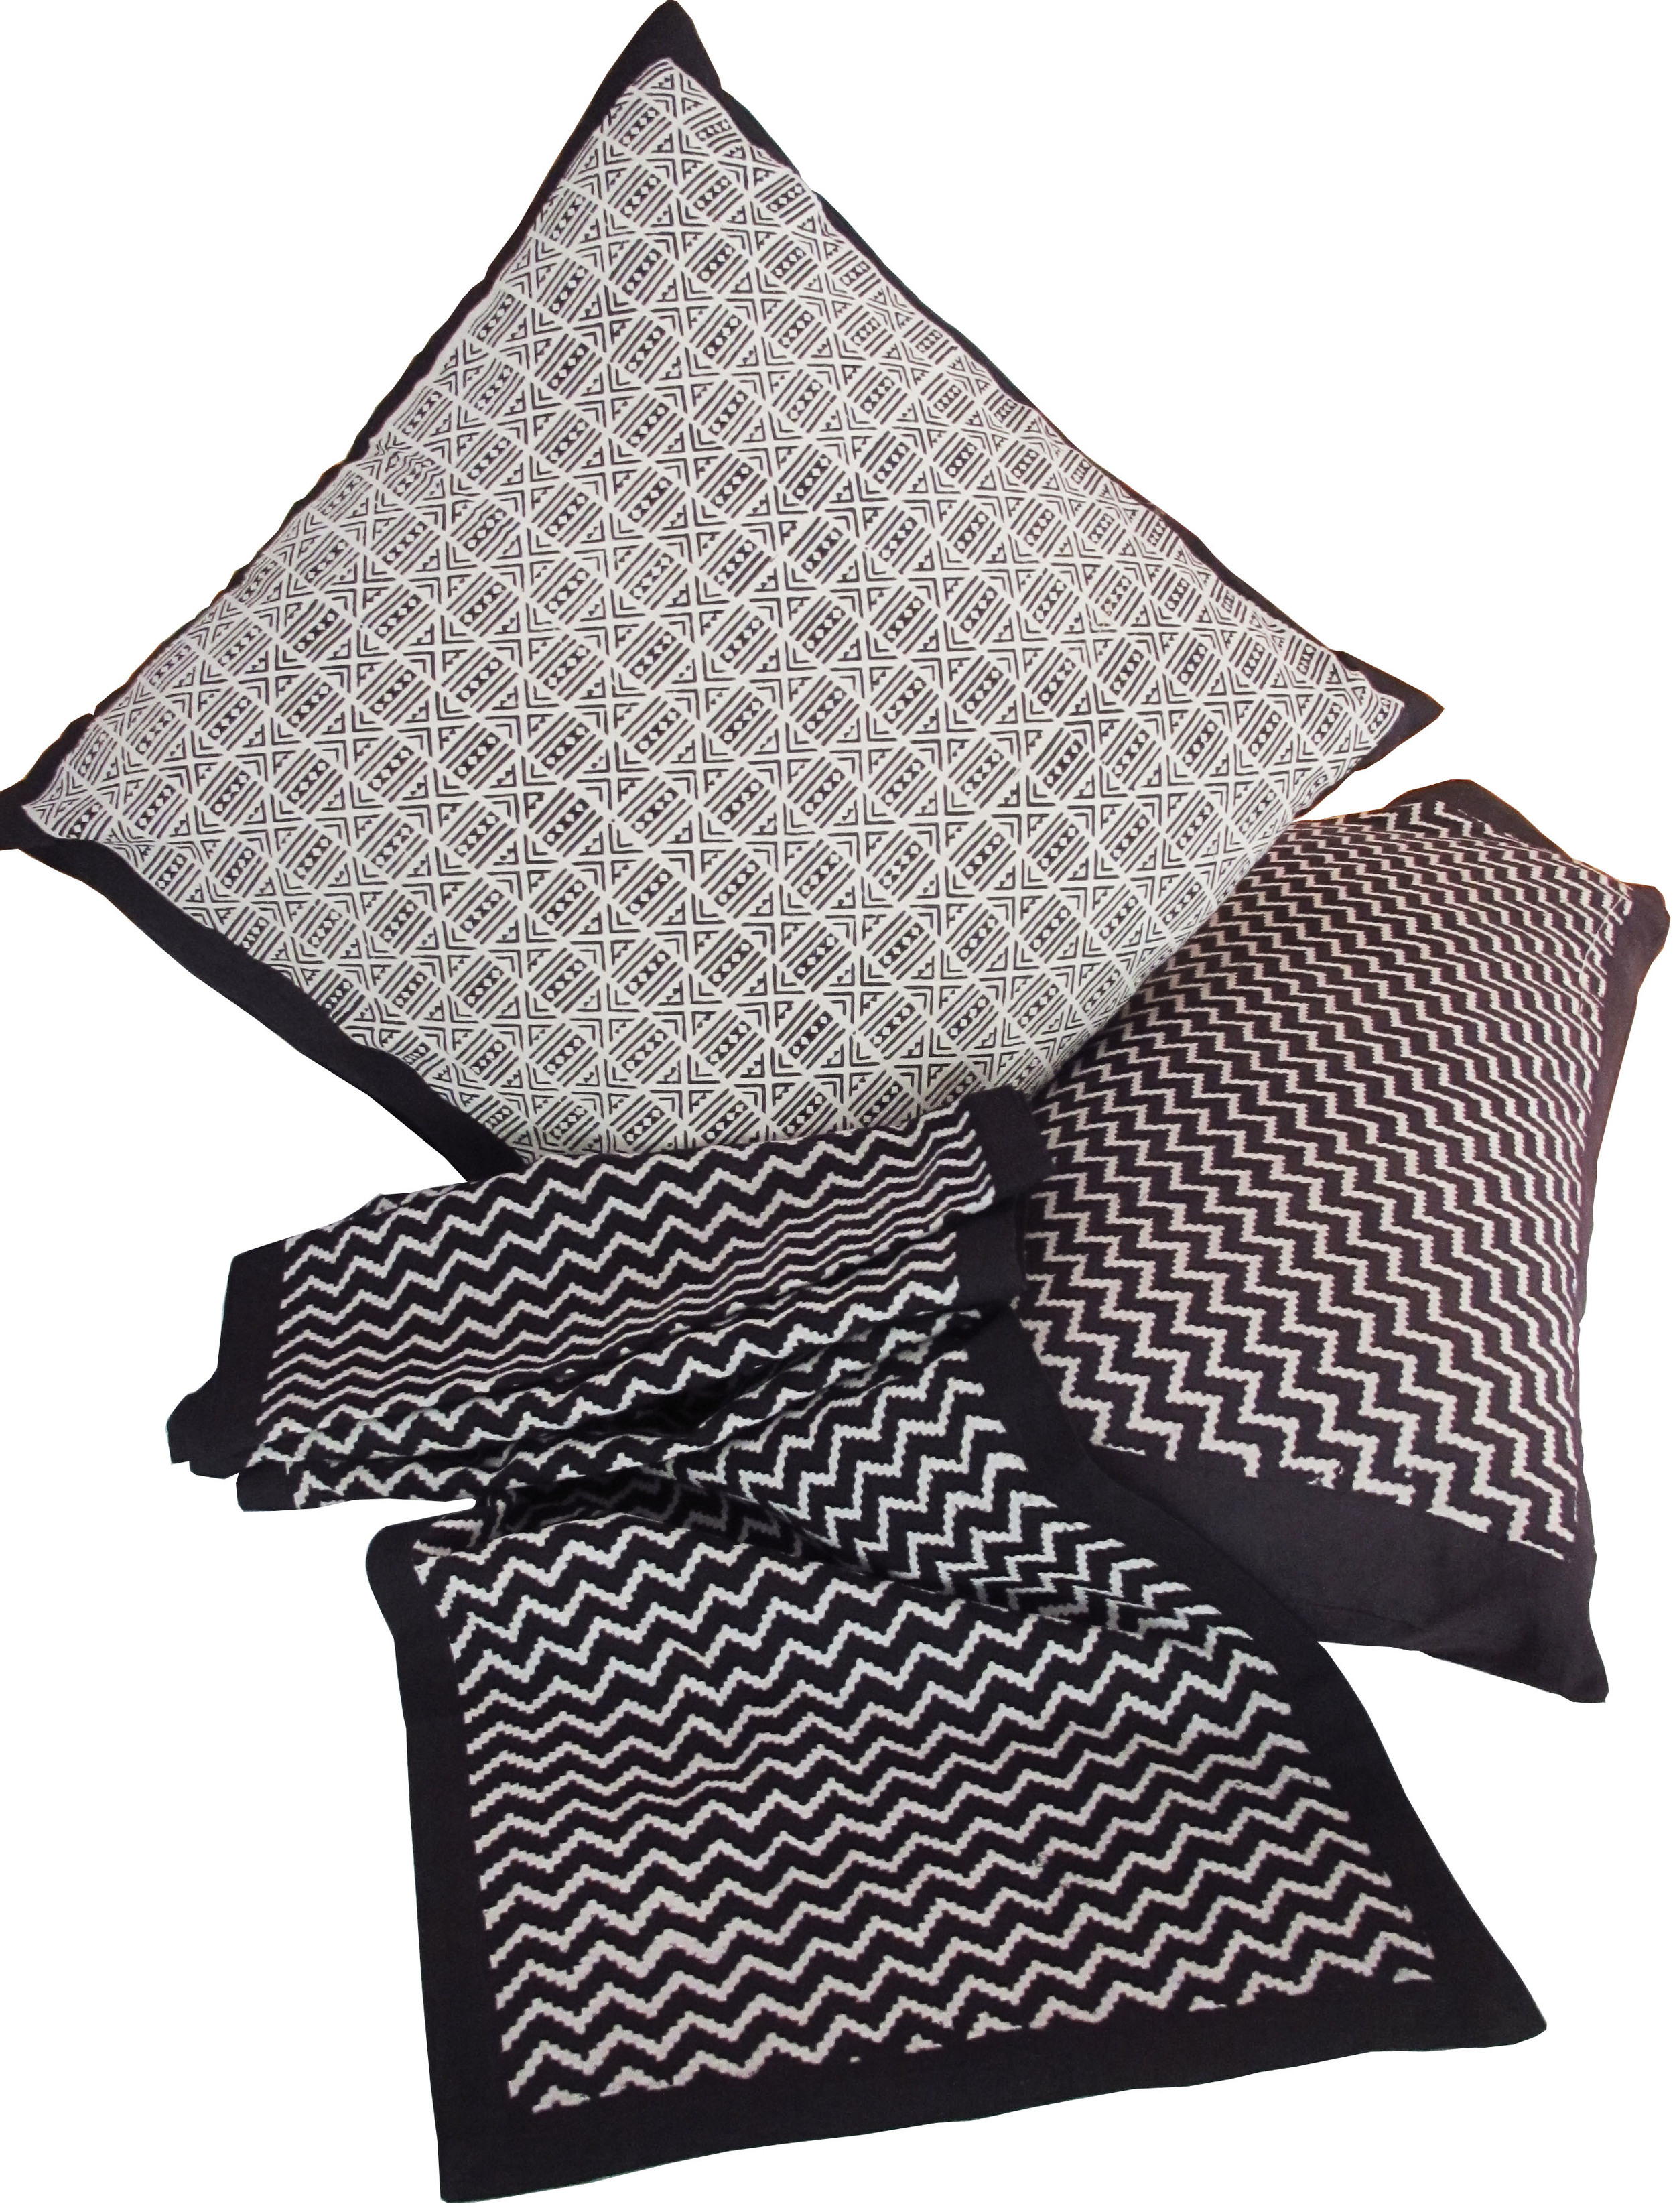 Black Geometric cushions.jpg